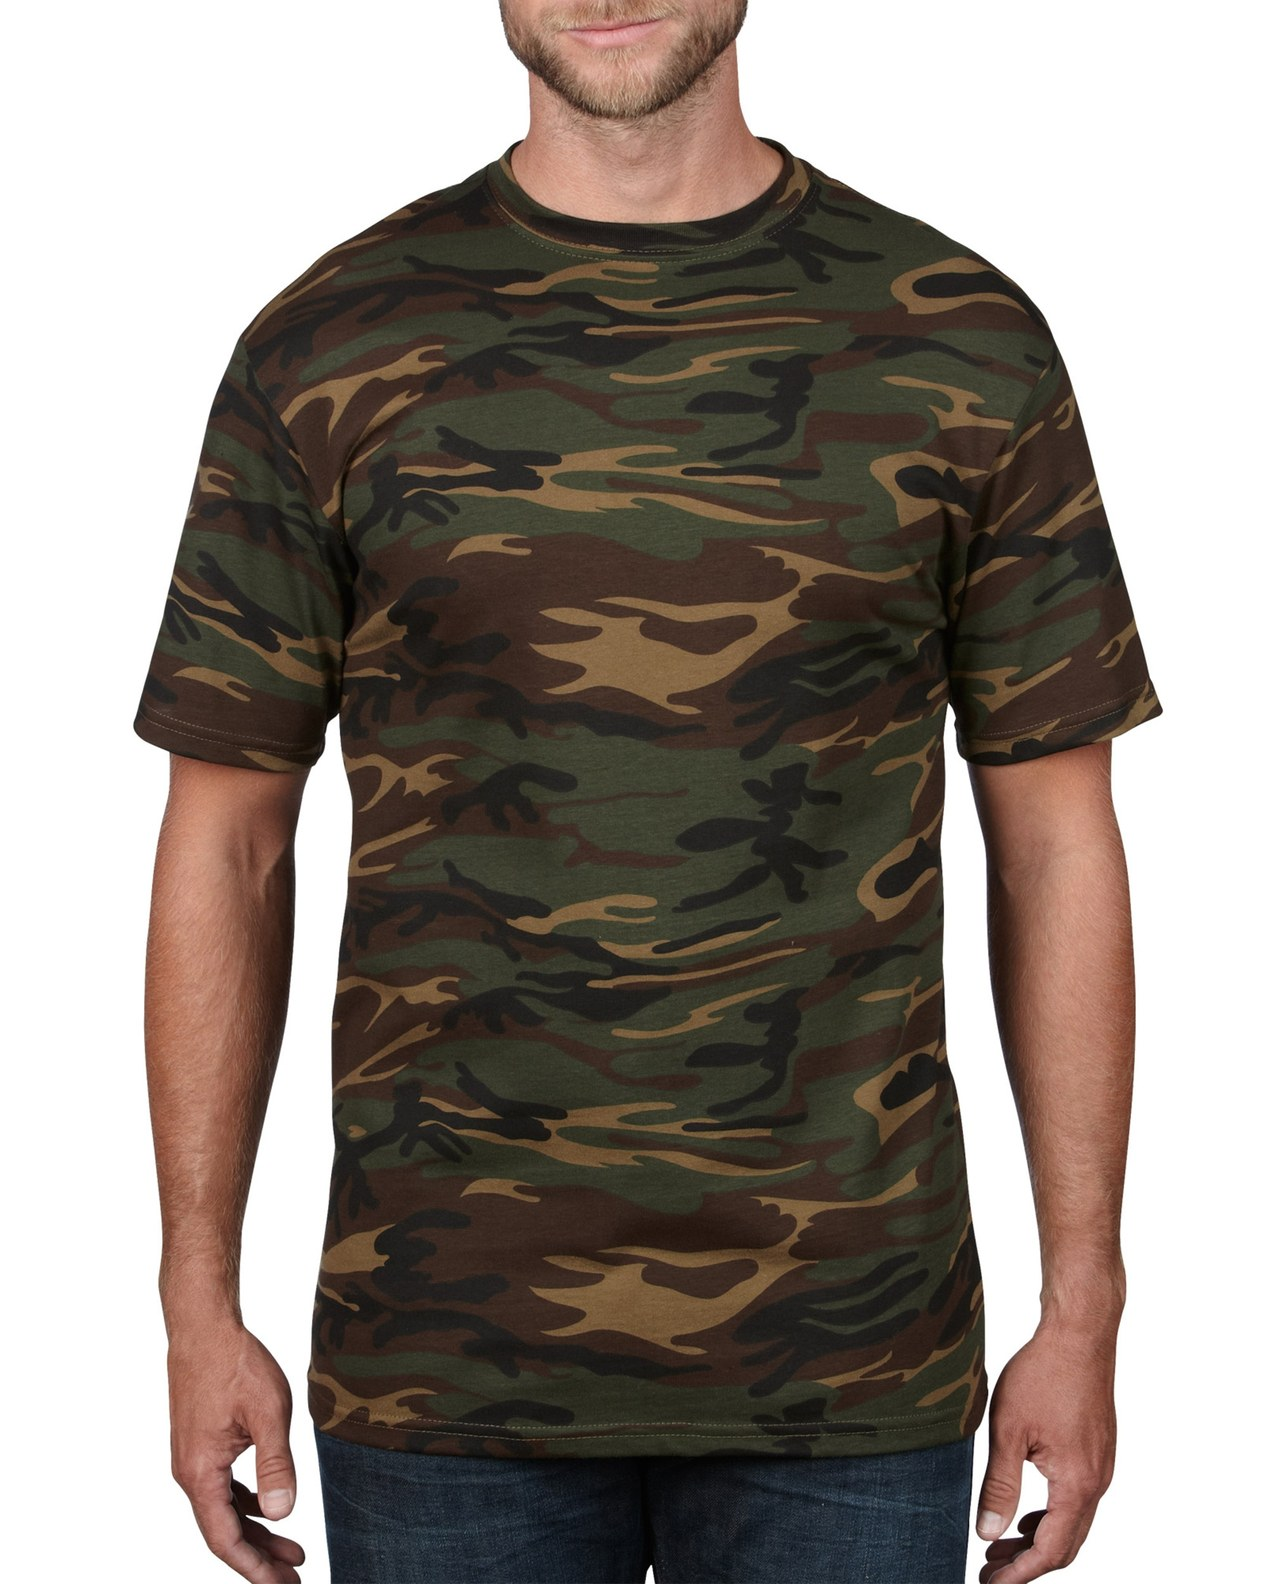 a5eab63f2 939 | 4.9 oz/yd² | Adult Midweight Camouflage Tee | Anvil